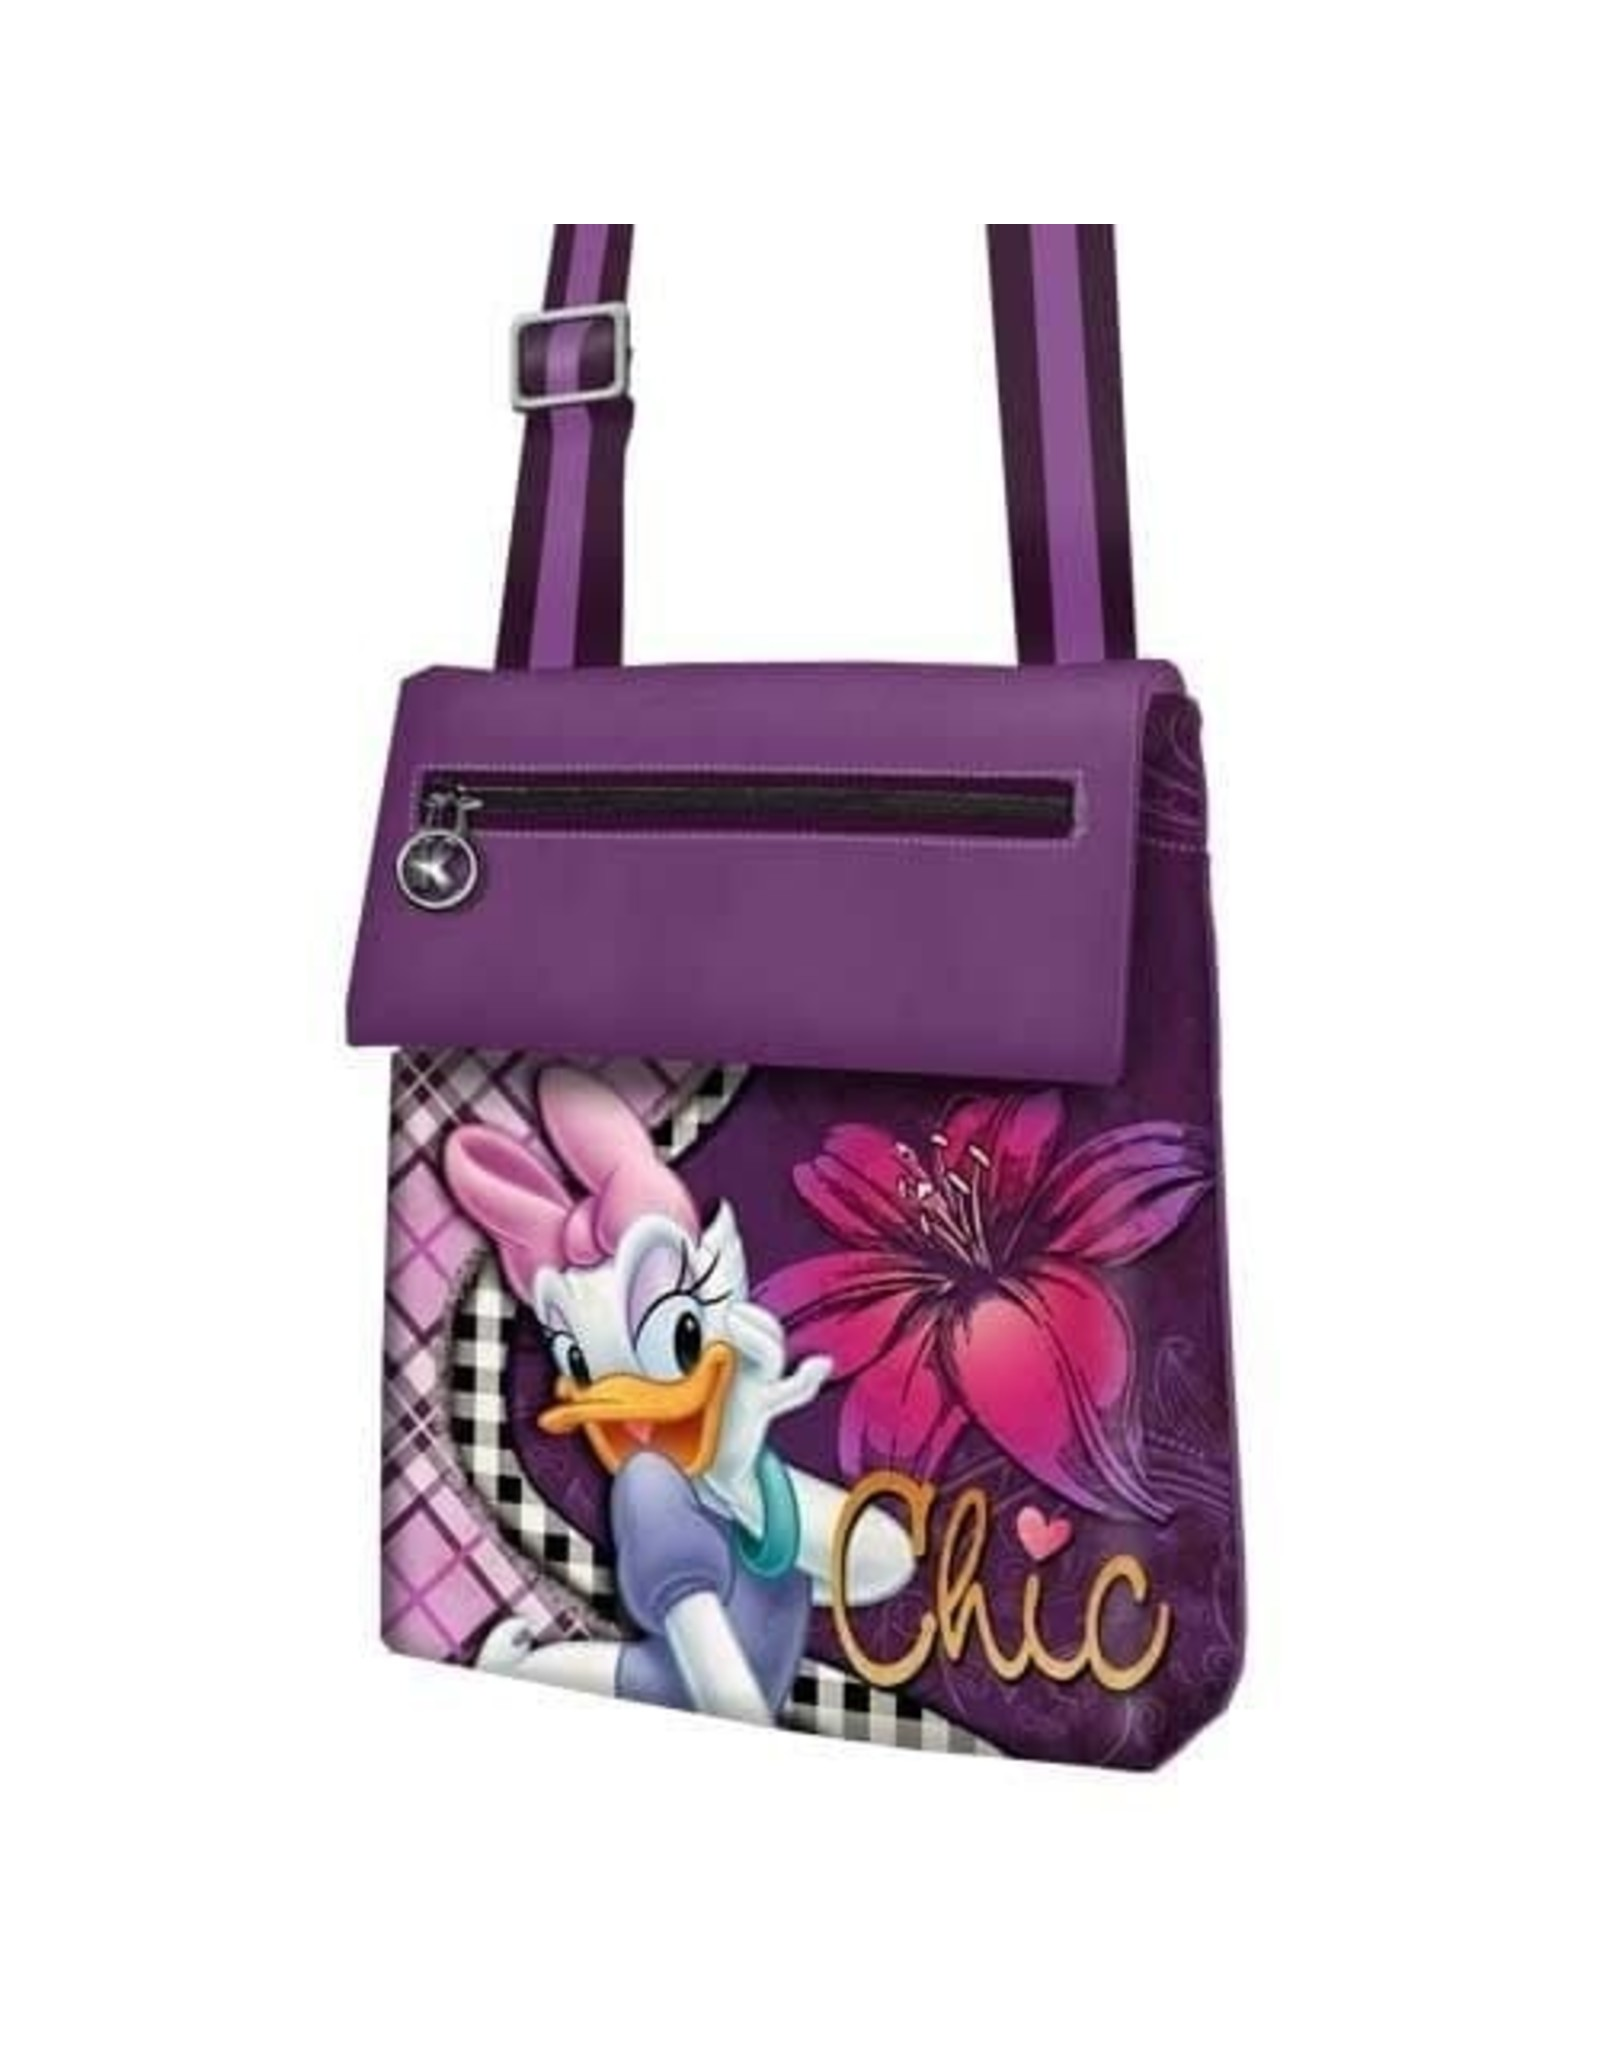 Disney Disney bags - Disney shoulder bag Daisy Duck Chic